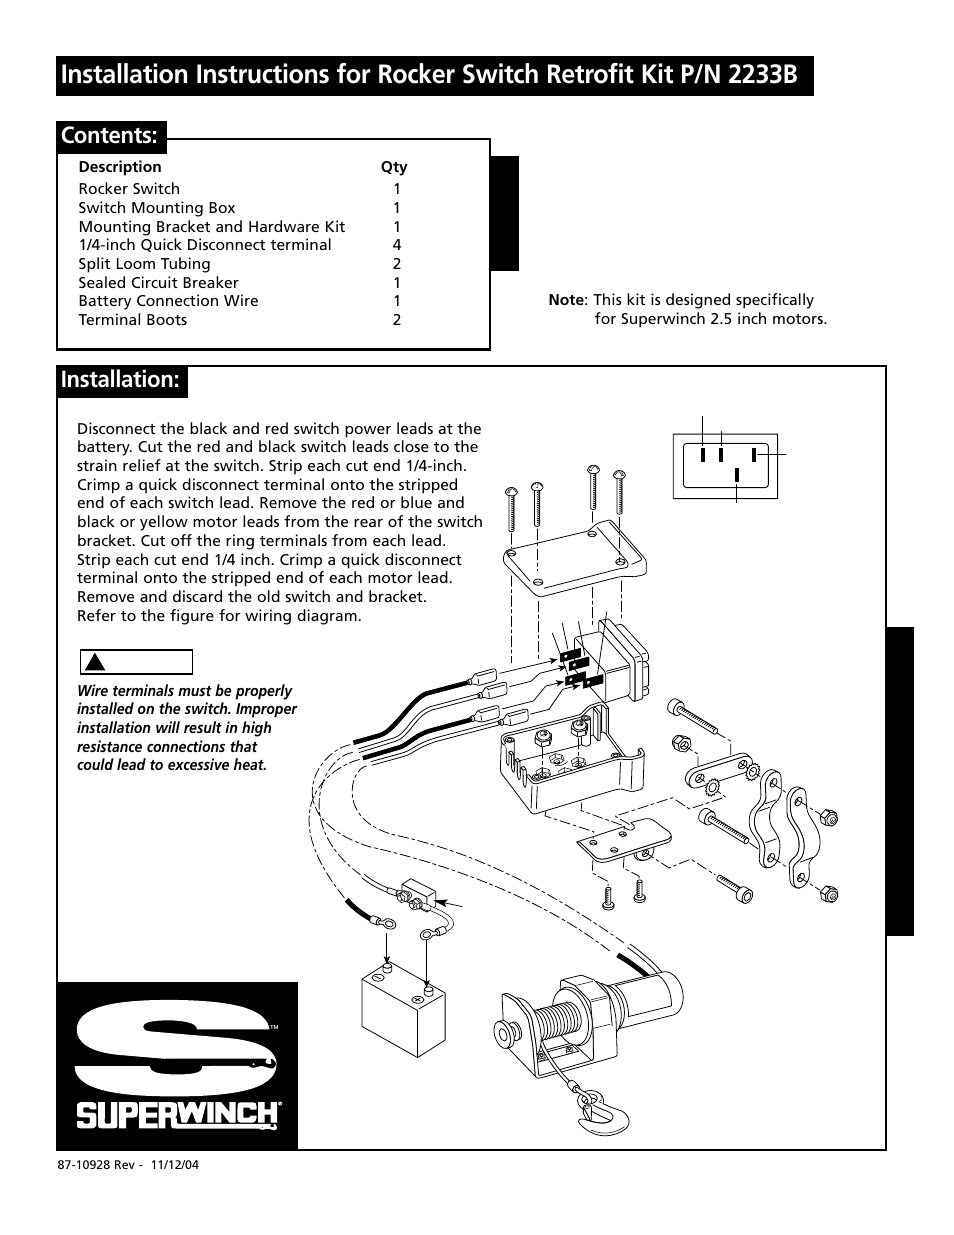 superwinch rocker switch 2233b page1 superwinch rocker switch (2233b) user manual 6 pages superwinch wiring diagram at n-0.co